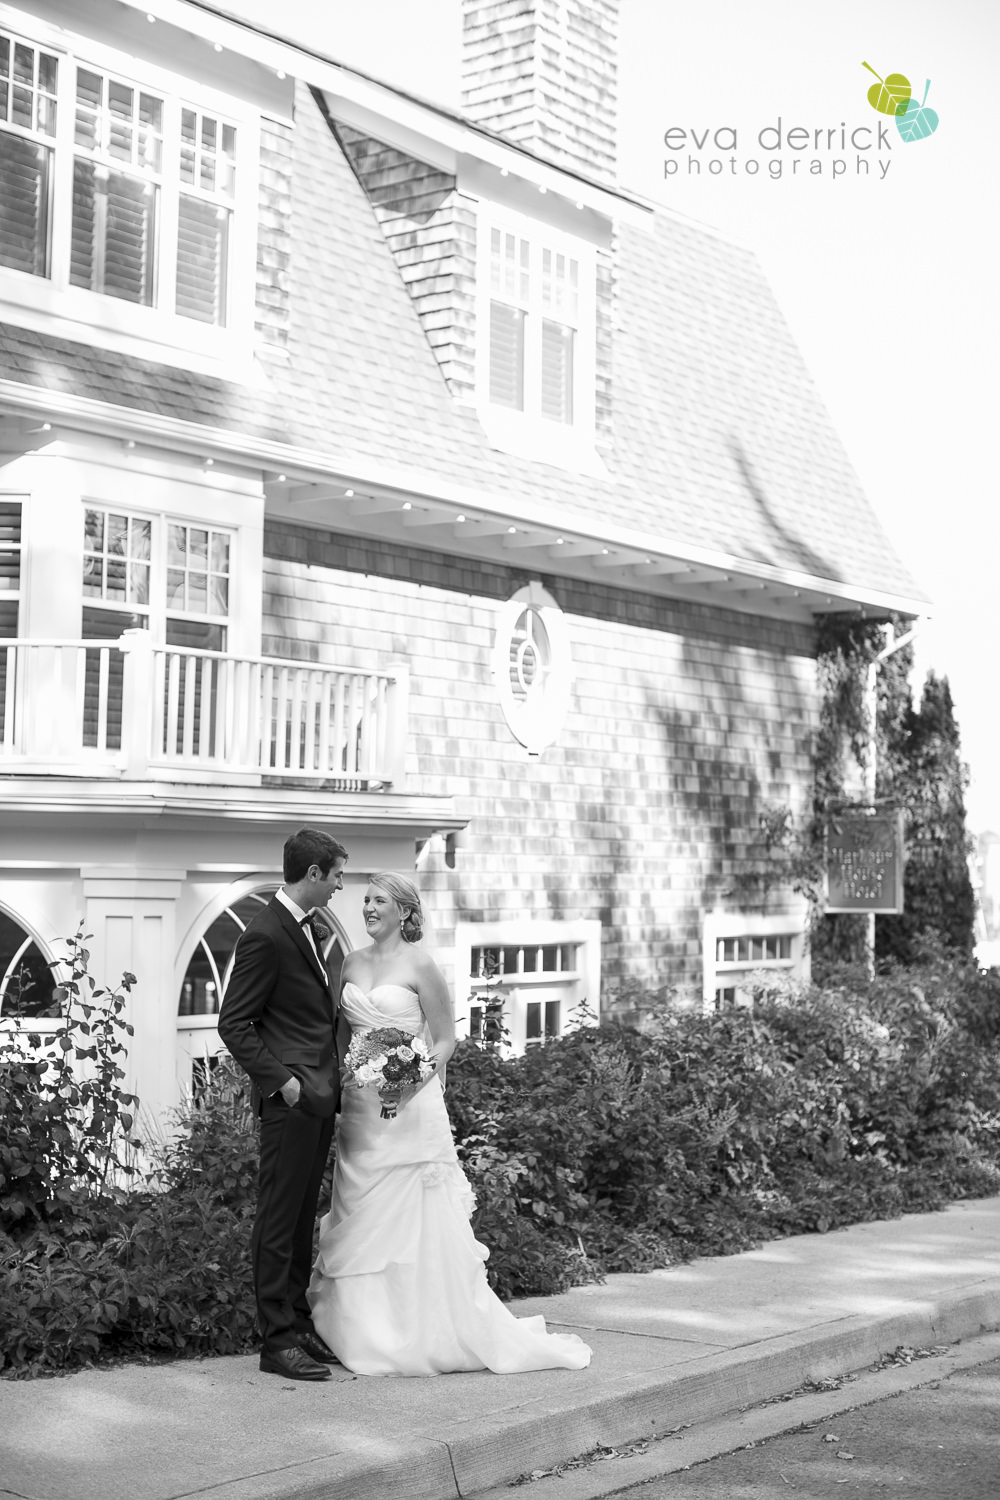 Vintage-hotels-wedding-Niagara-on-the-Lake-Pillar-and-Post-photo-by-eva-derrick-photography-026.JPG